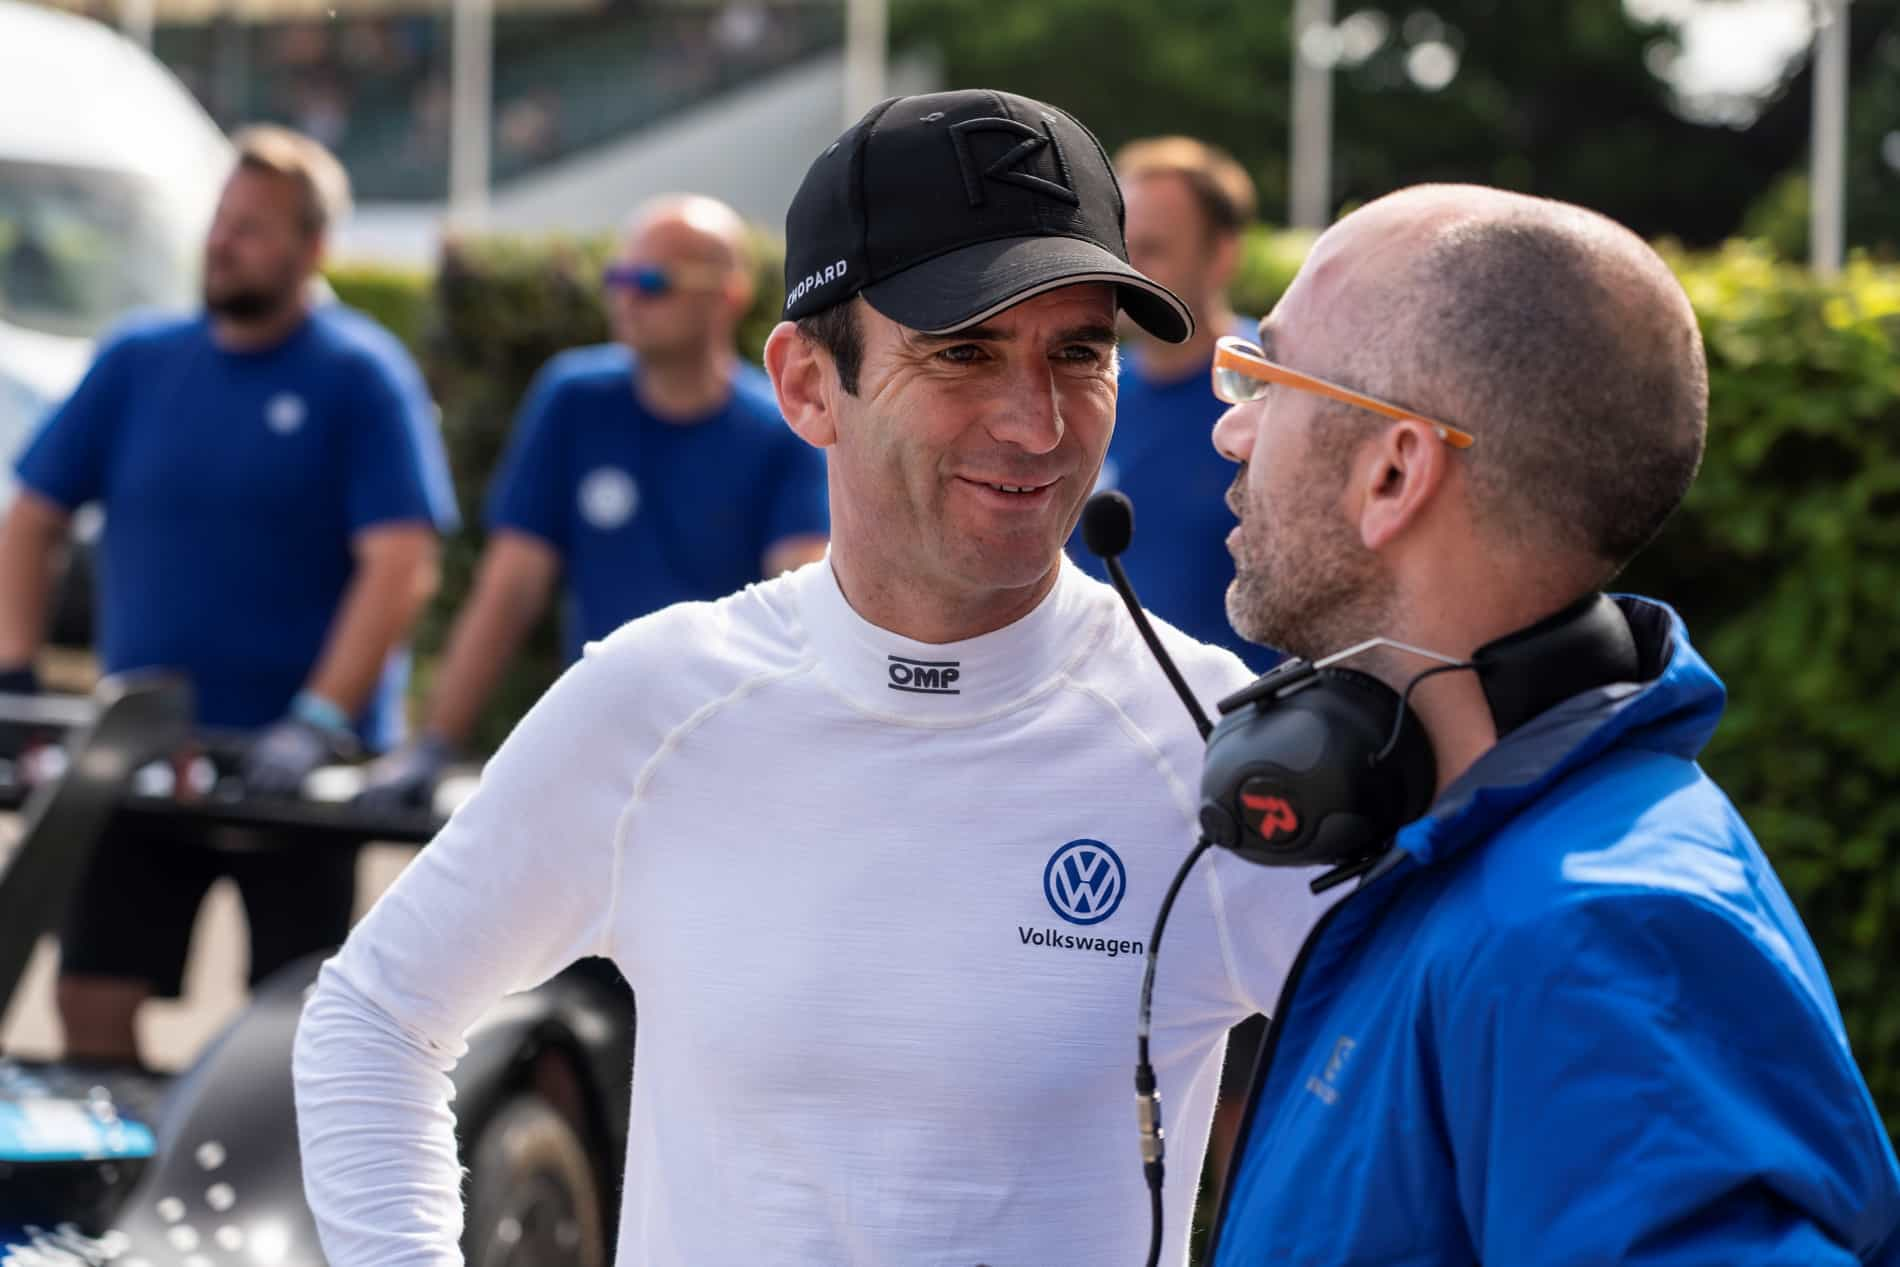 Faster than Formula 1: New record for the Volkswagen ID.R in Goo